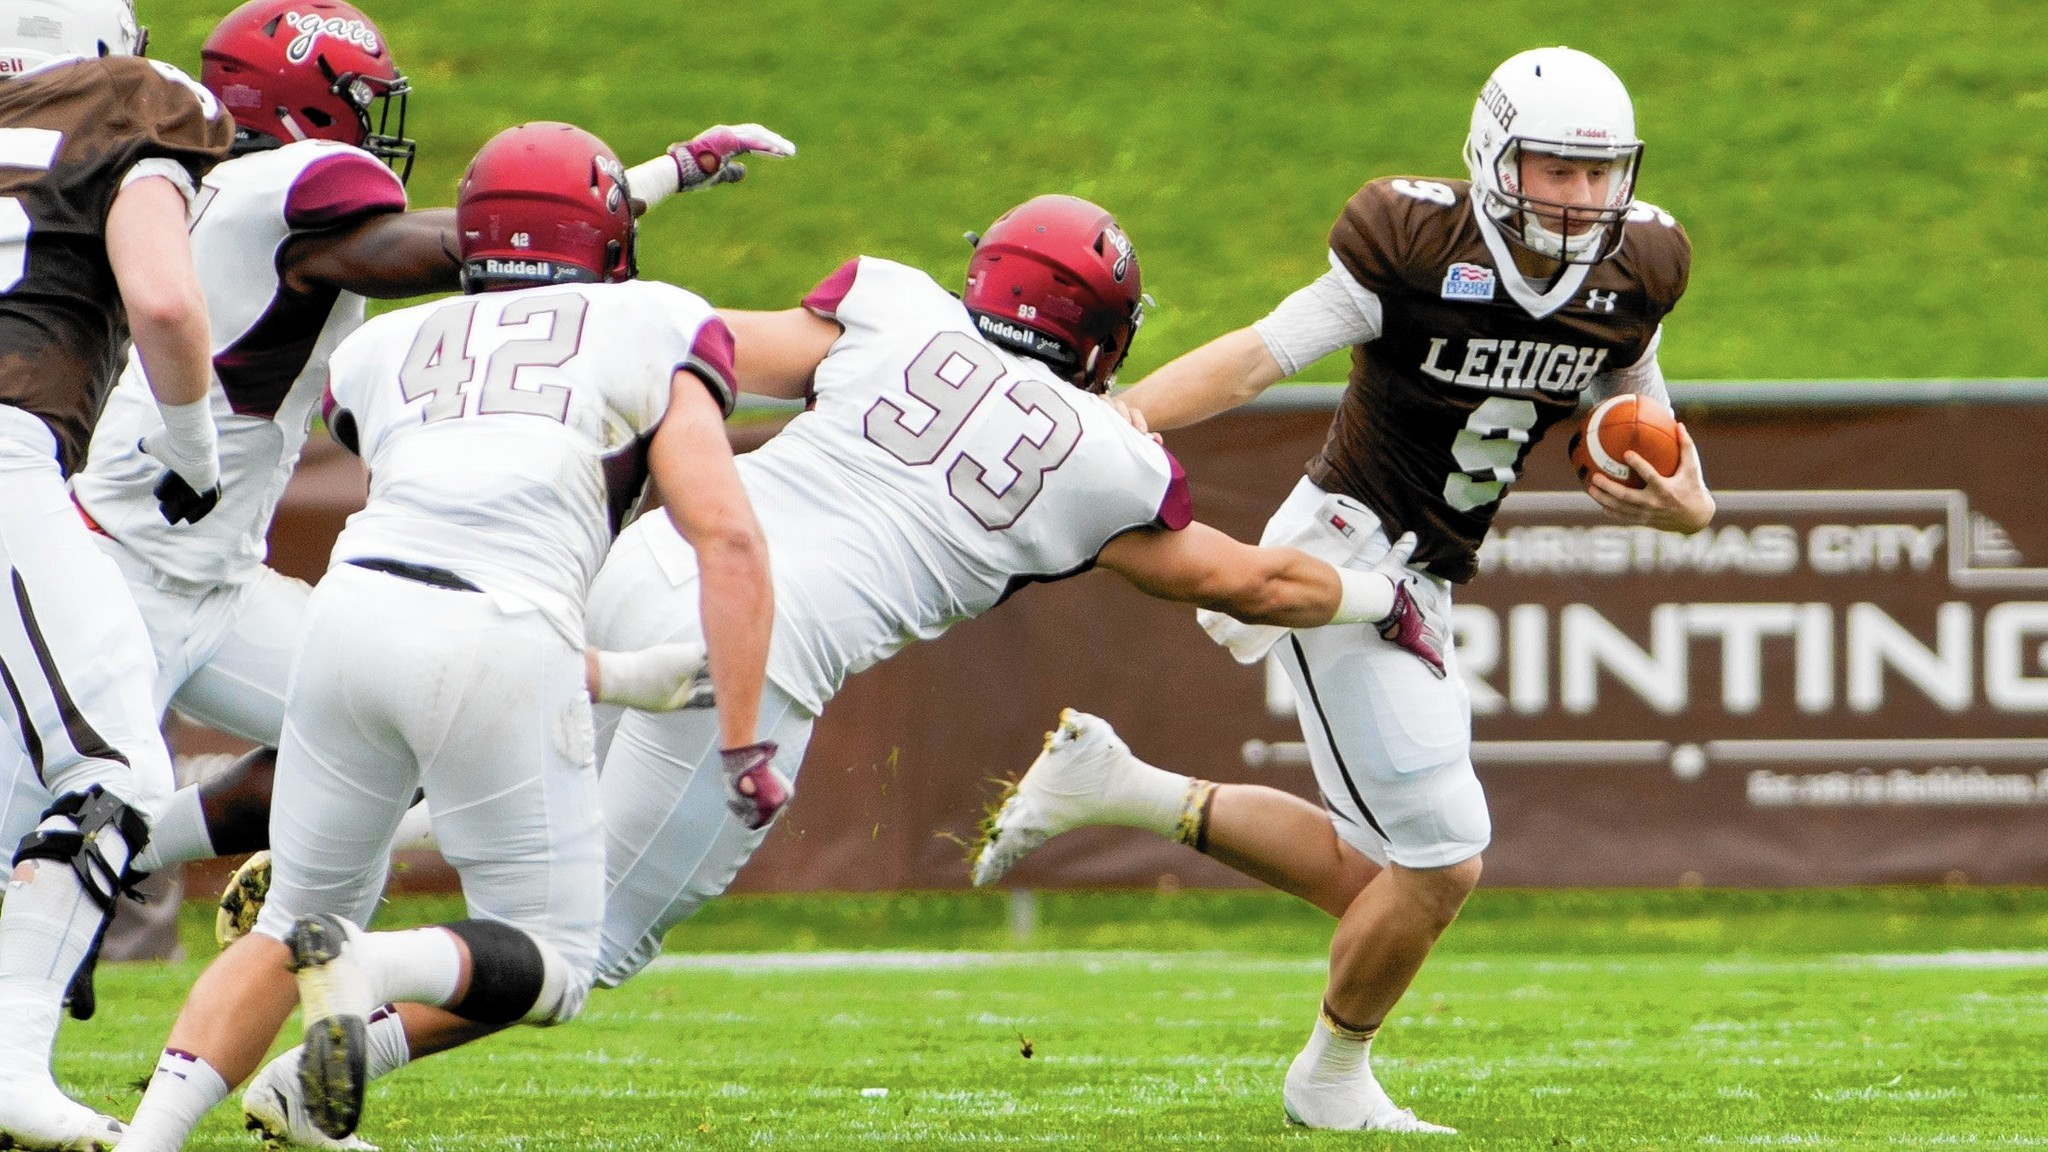 Lehigh At Colgate Game Preview: Will Ignition Happen In Hamilton?